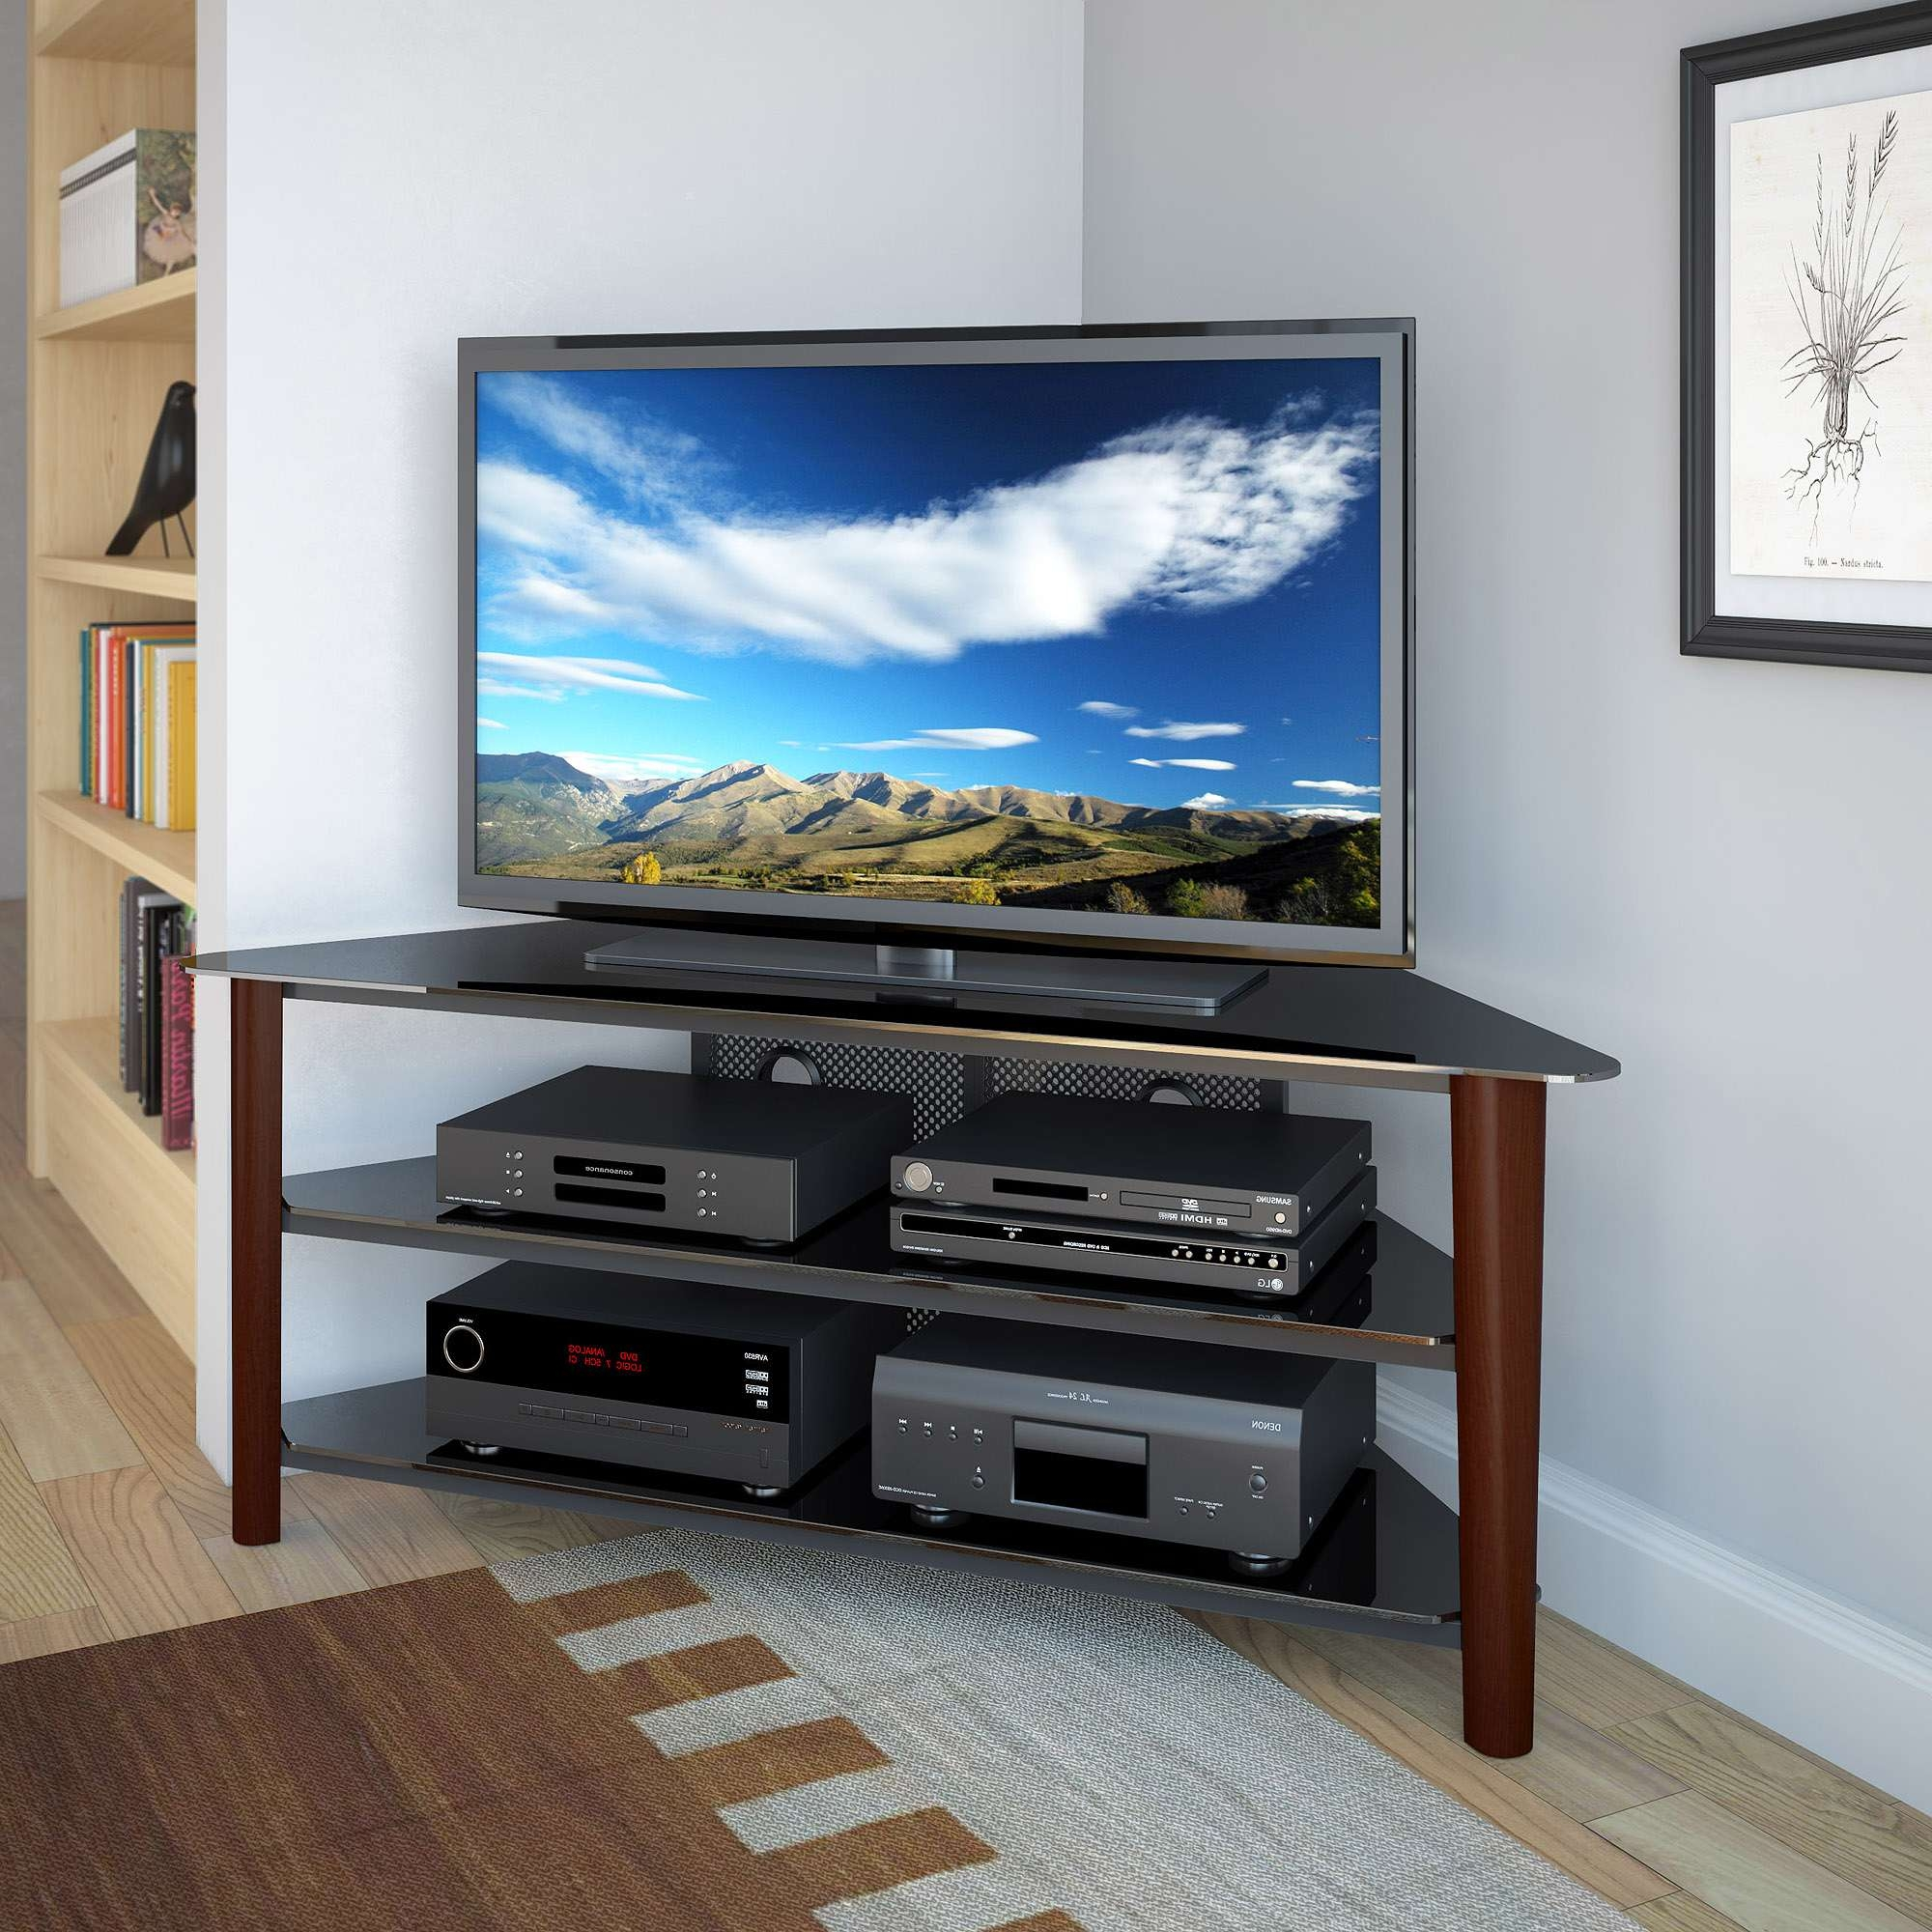 Good Tv Stands 55 Inch Flat Screen 61 On Interior Decor Home With Throughout 61 Inch Tv Stands (View 7 of 15)